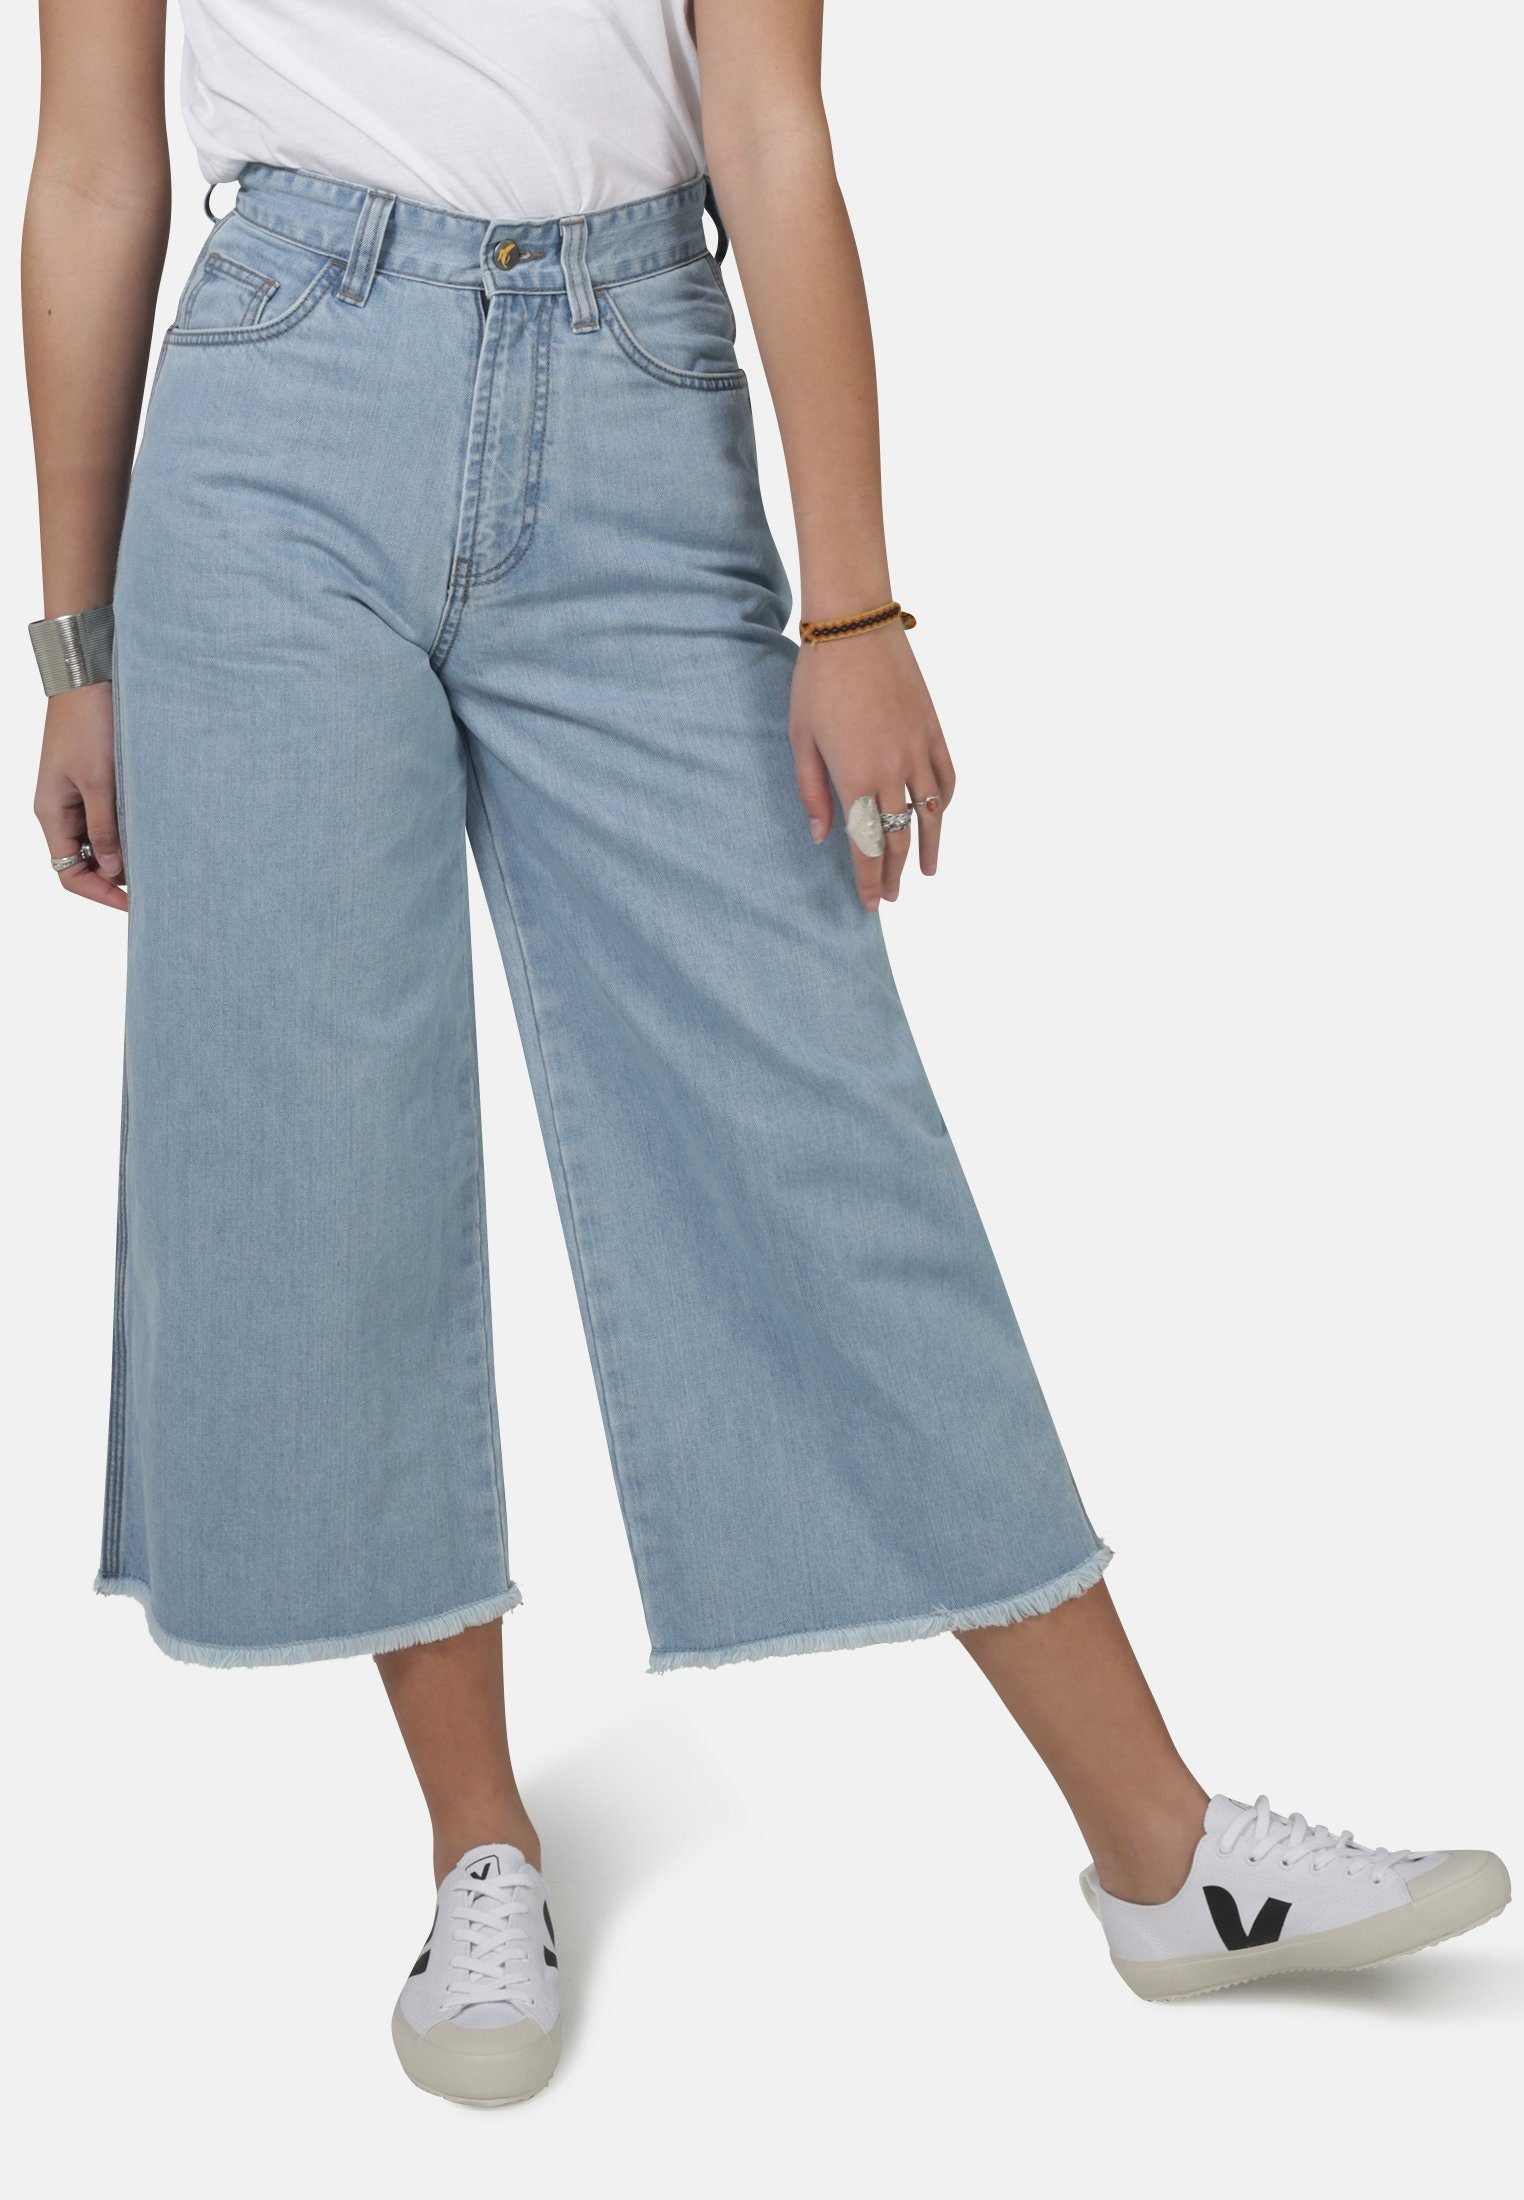 Jeans - Skate Cropped Light Vintage